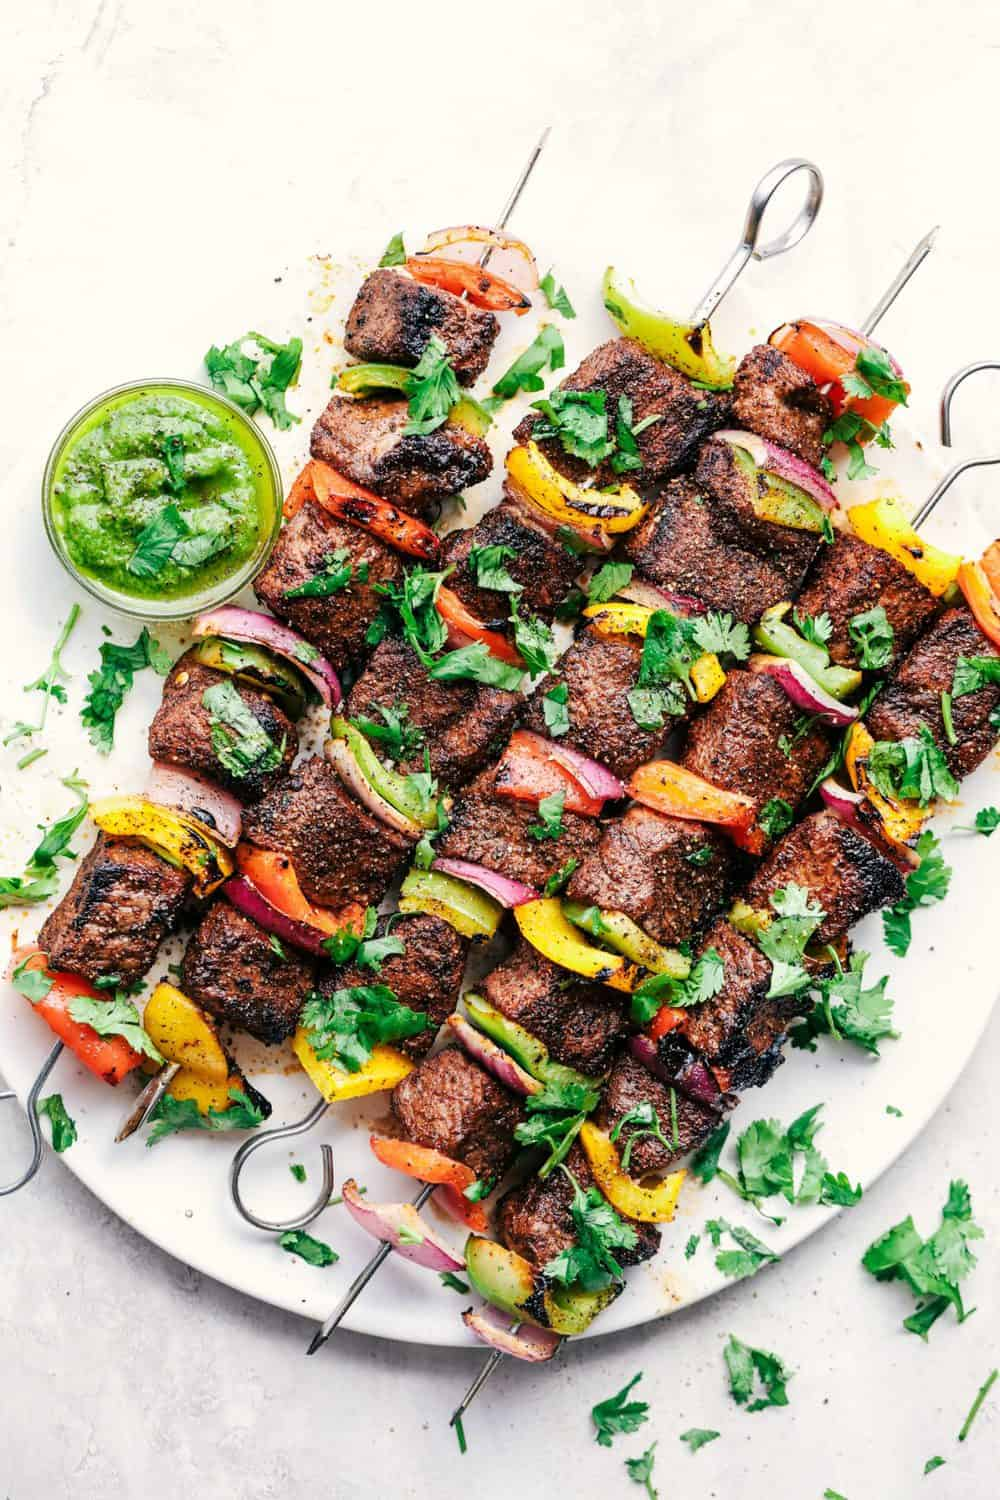 Finished Grilled Steak Fajita Skewers with Avocado Chimichurri on a plate.